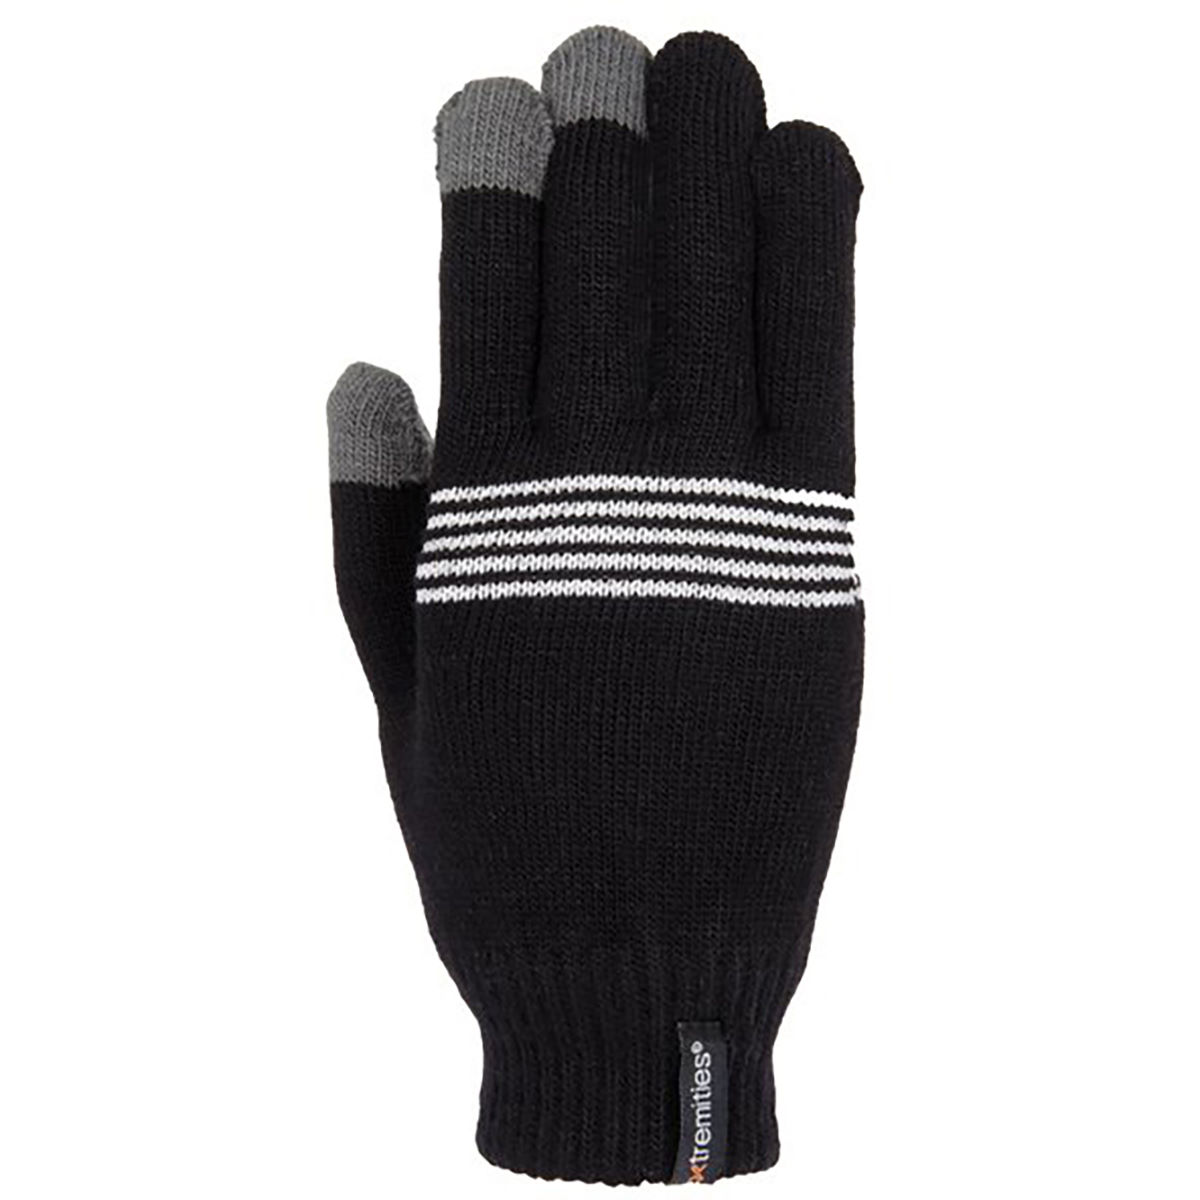 Extremities Reflective Thinny Touch Glove - Guantes